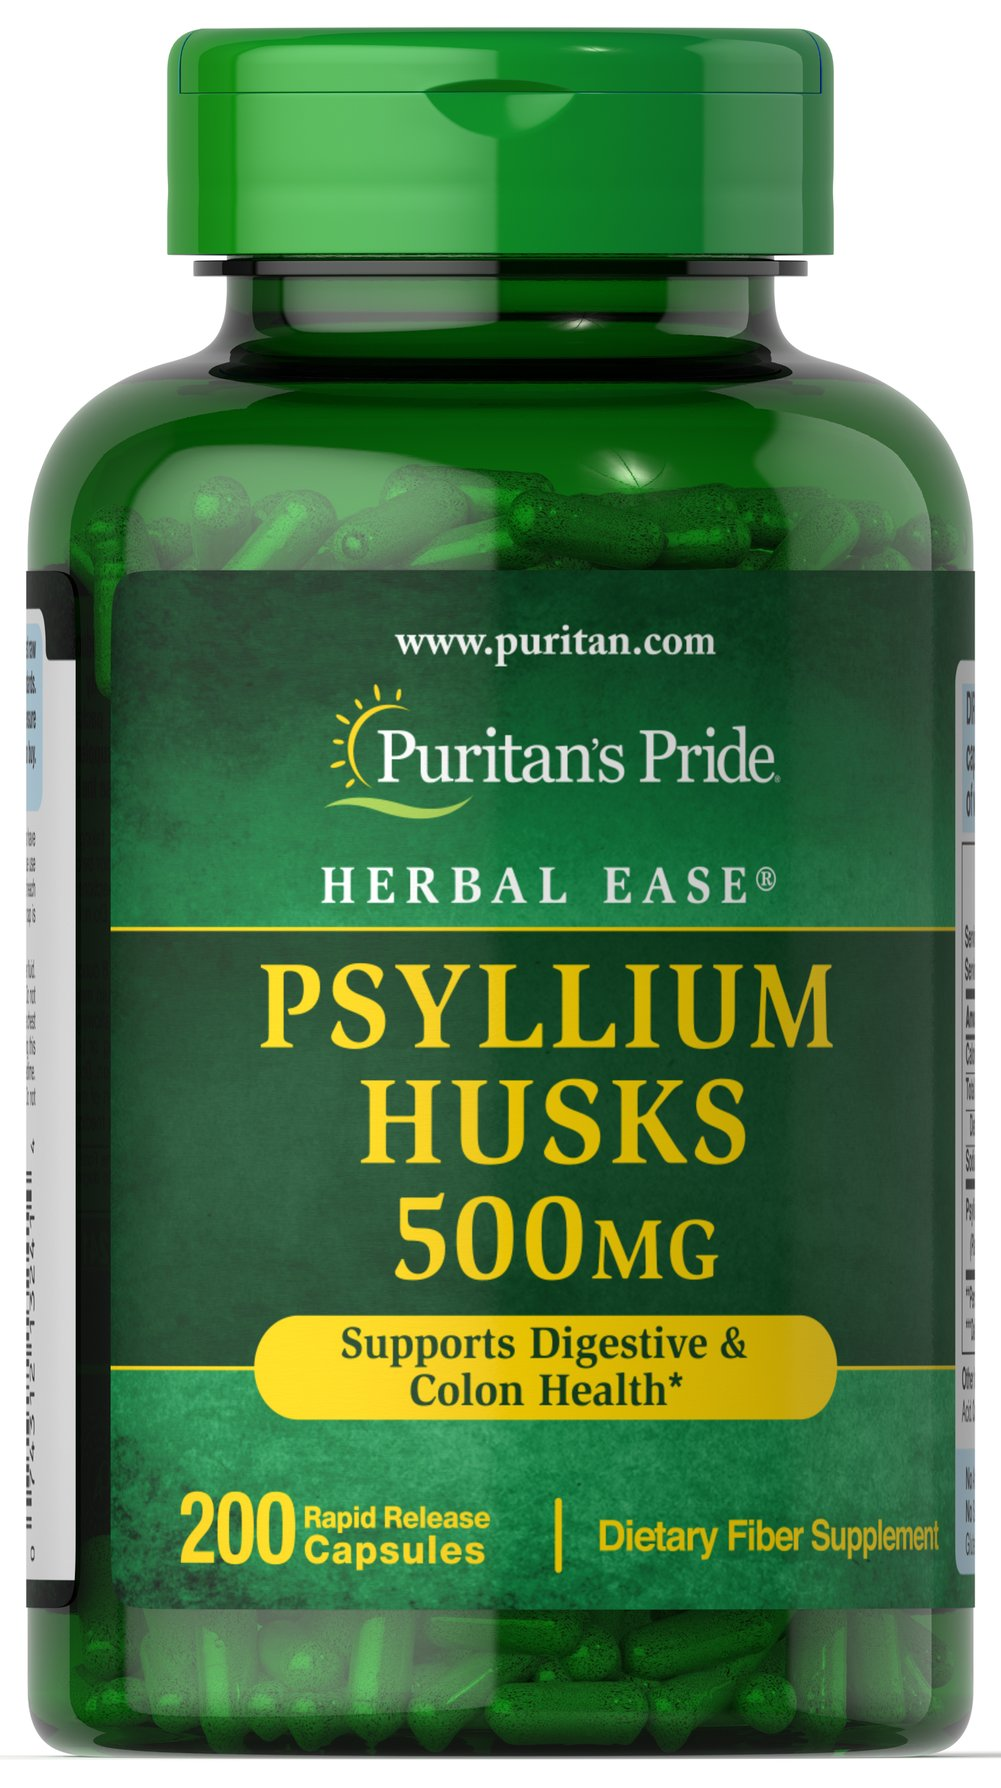 Psyllium Husks 500 mg Thumbnail Alternate Bottle View